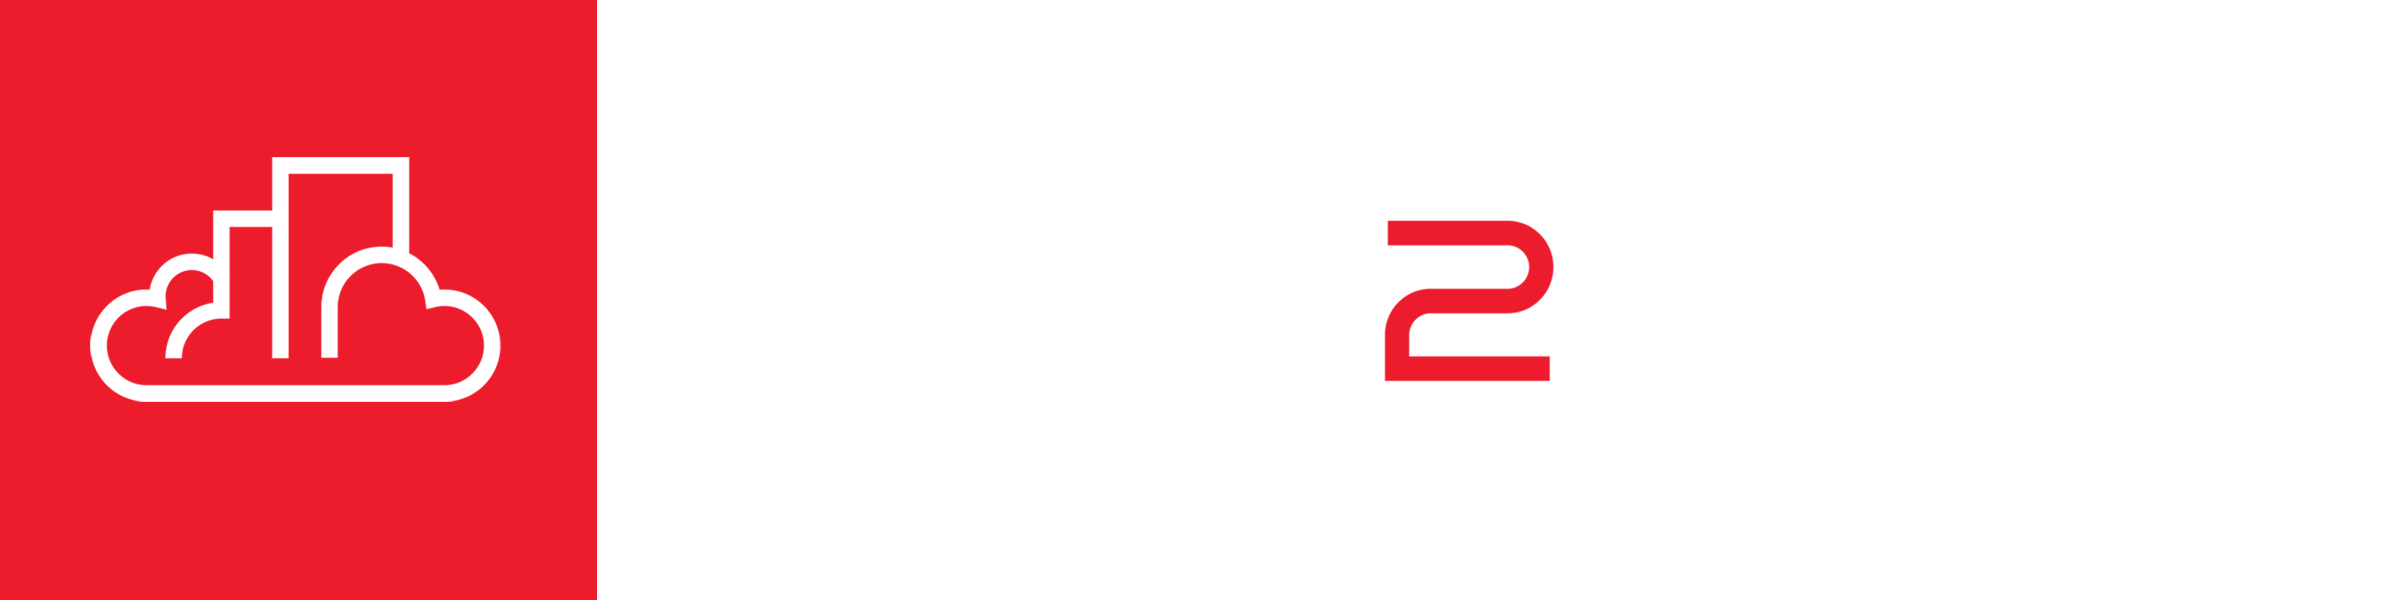 RED_BLOCK_LOGO_WHITE.png